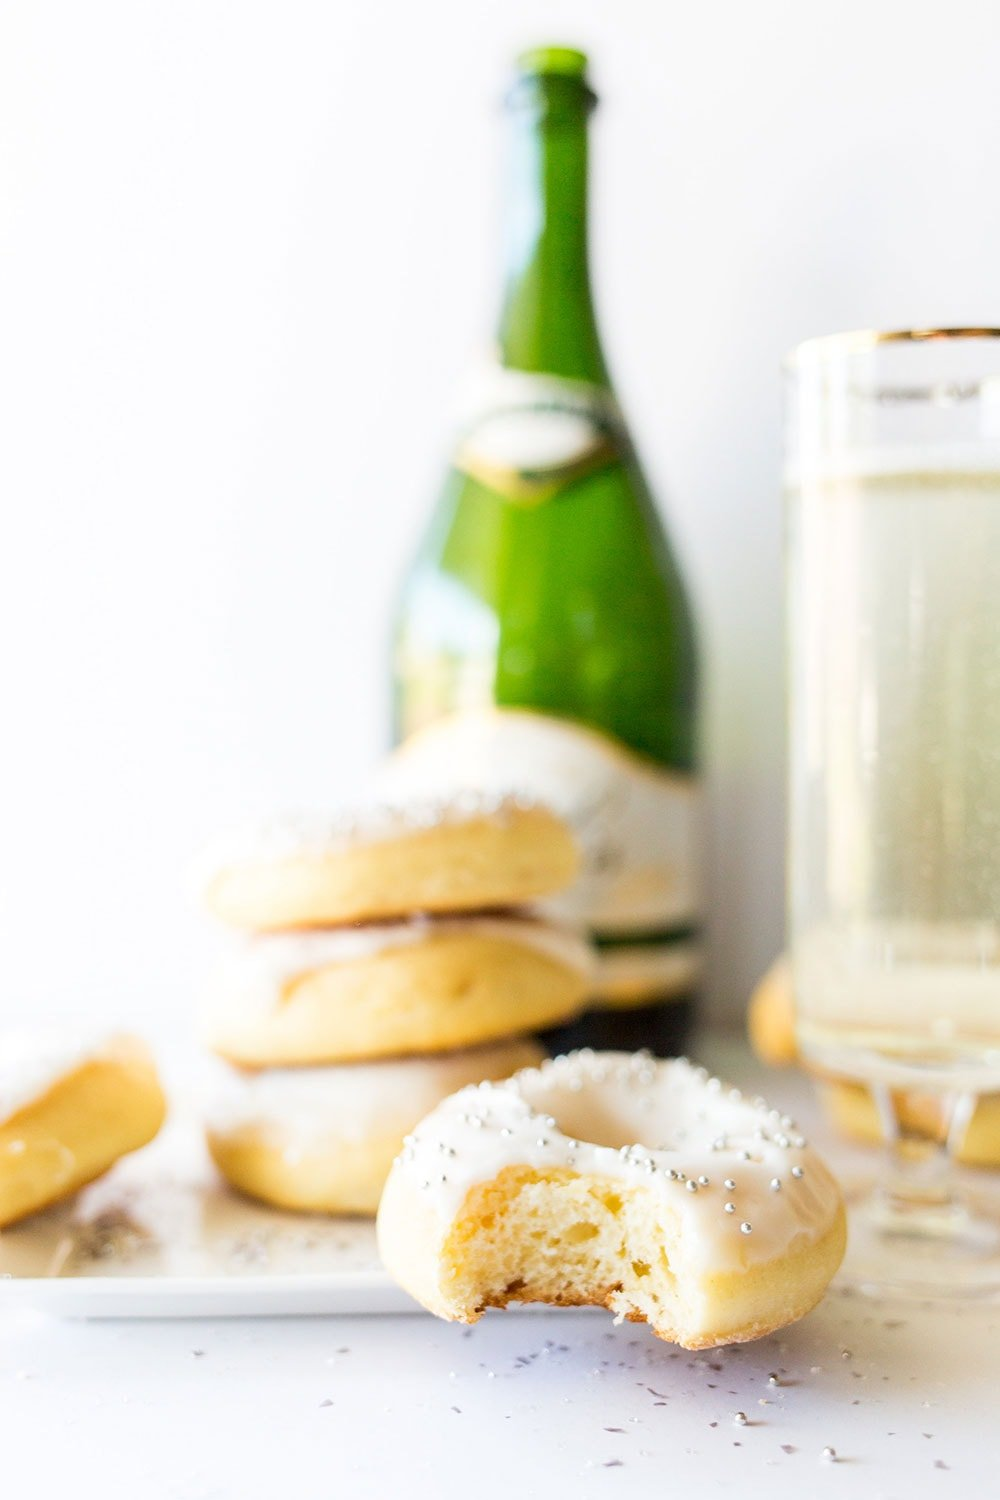 Baked Champagne Doughnuts are ultra light and fluffy. Made with champagne in the dough AND in the icing, these are perfect for any New Year's celebration.